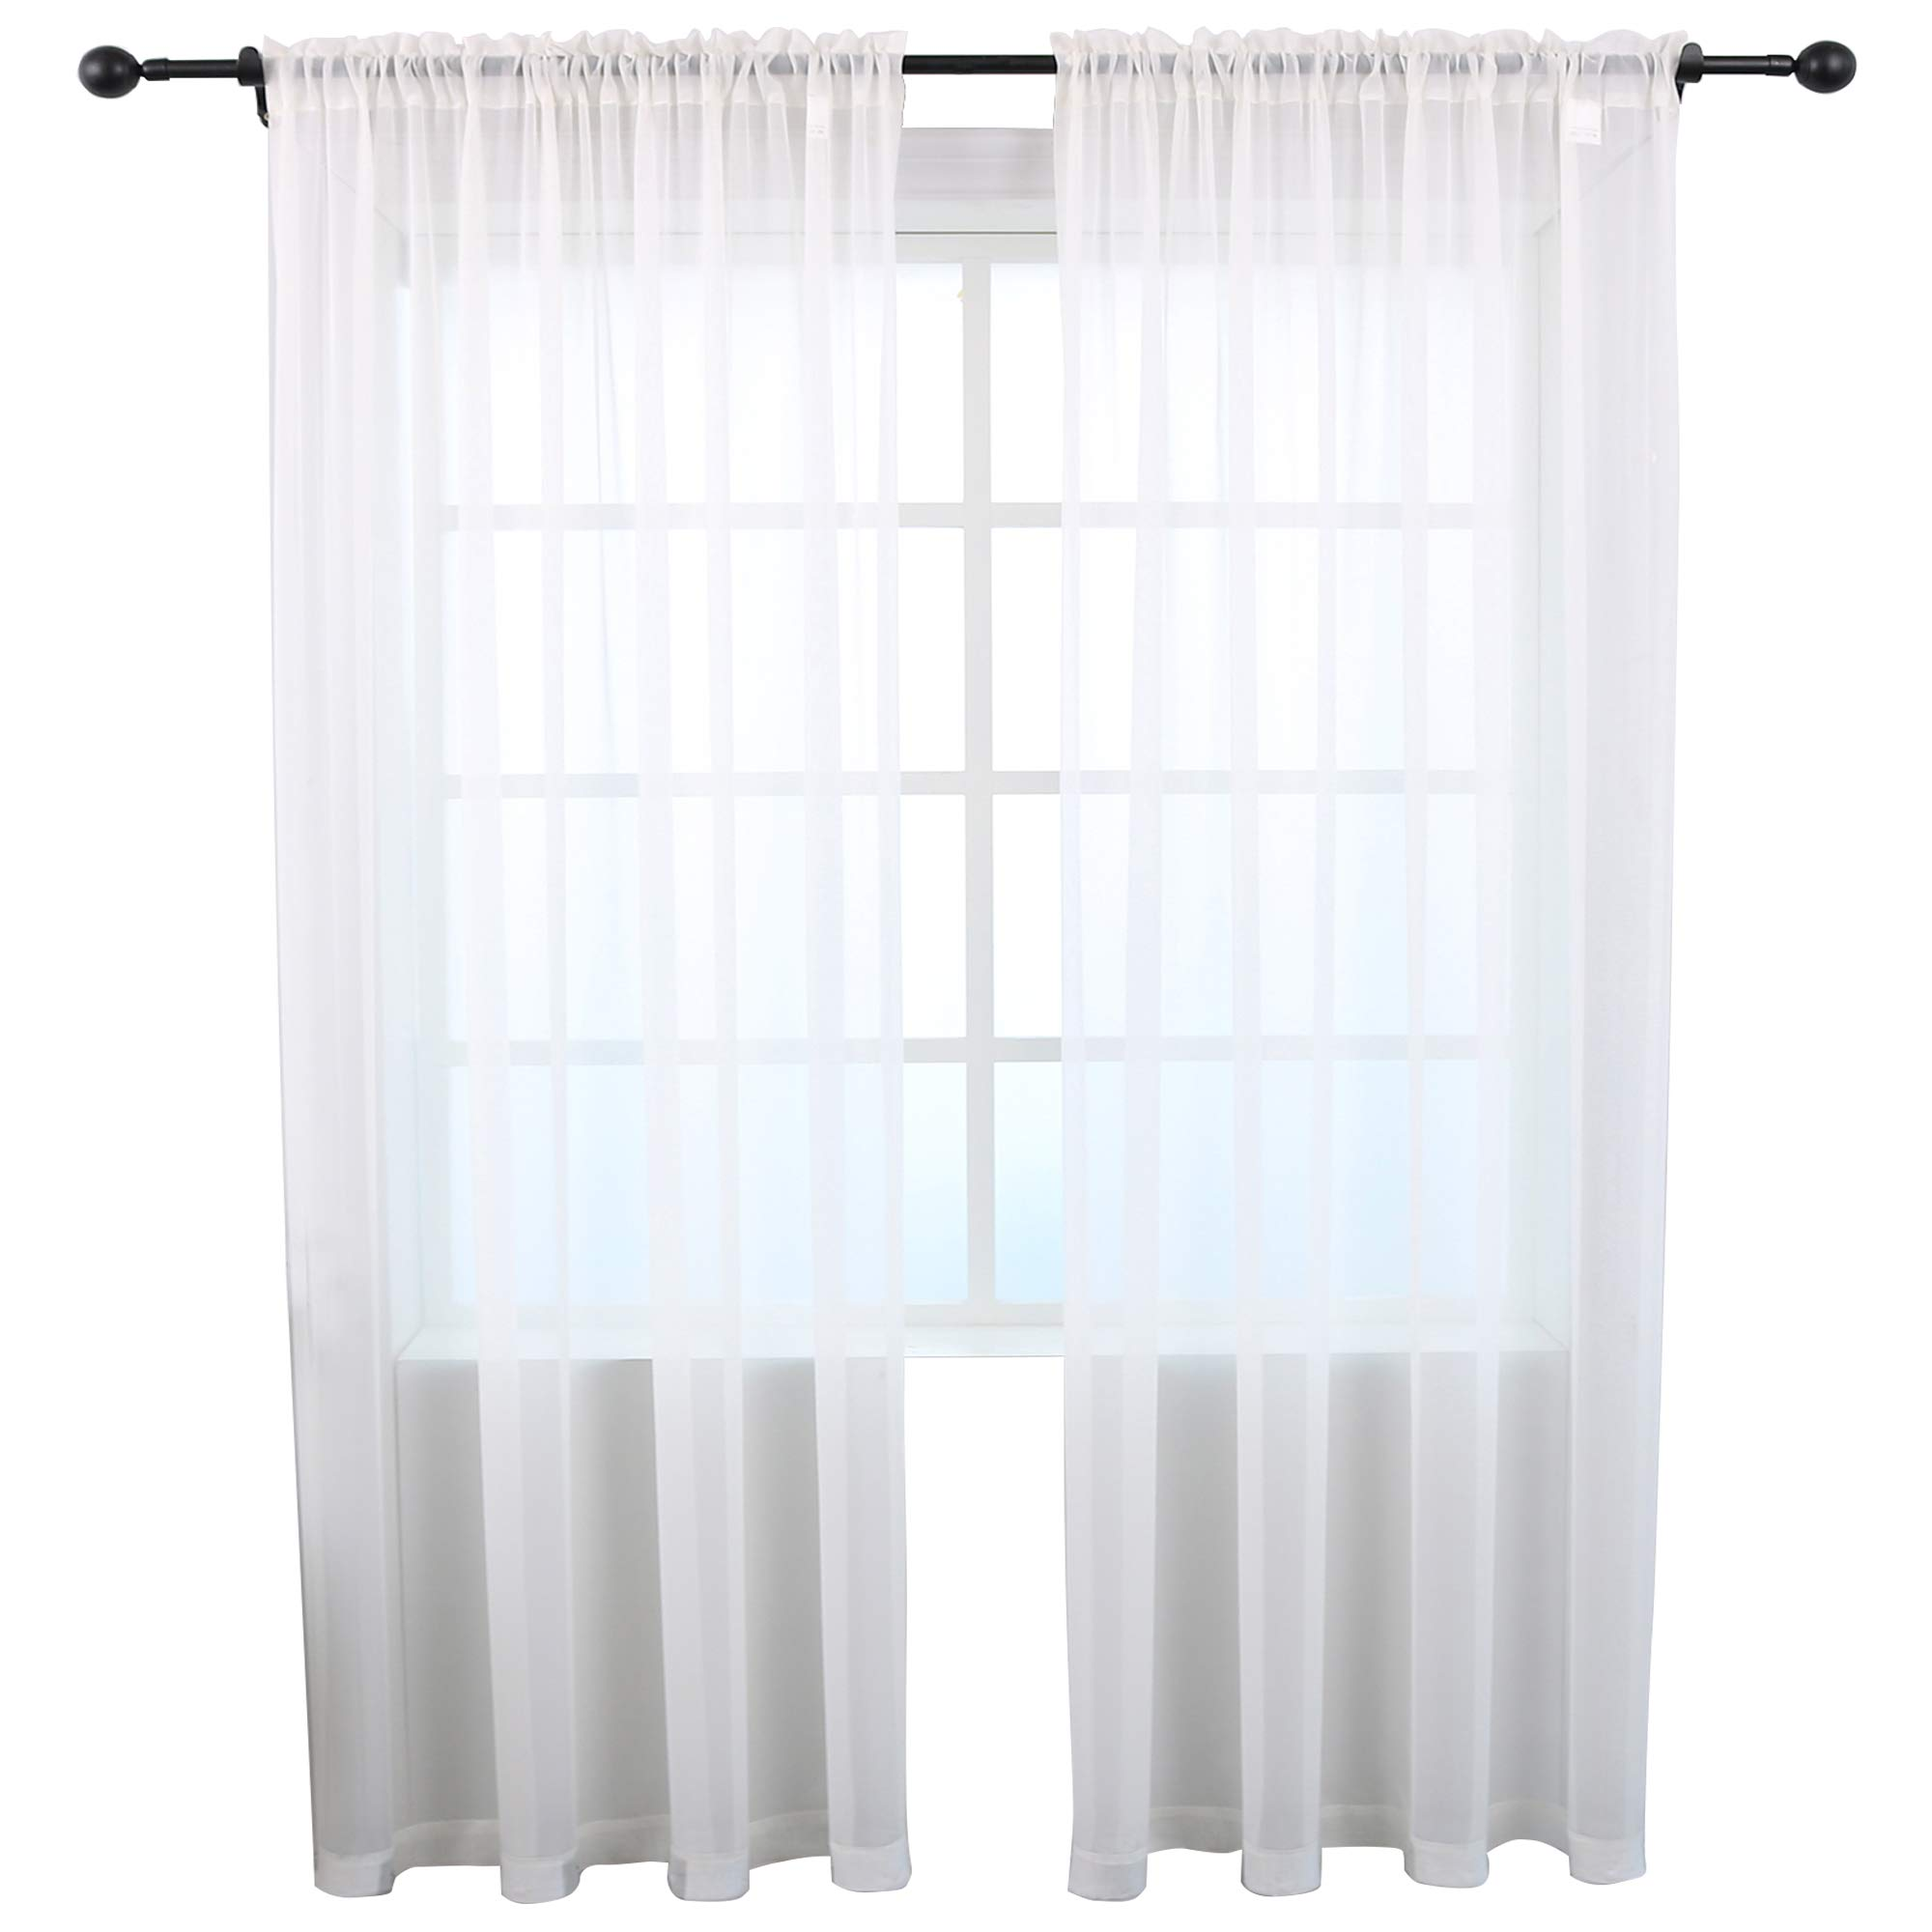 KEQIAOSUOCAI Sheer Curtains Inherent Flame Retardant Window Sheer Curtain Panels for Bedroom Living Room Hotel,Antiflaming,White,52''x95'',Set of 2